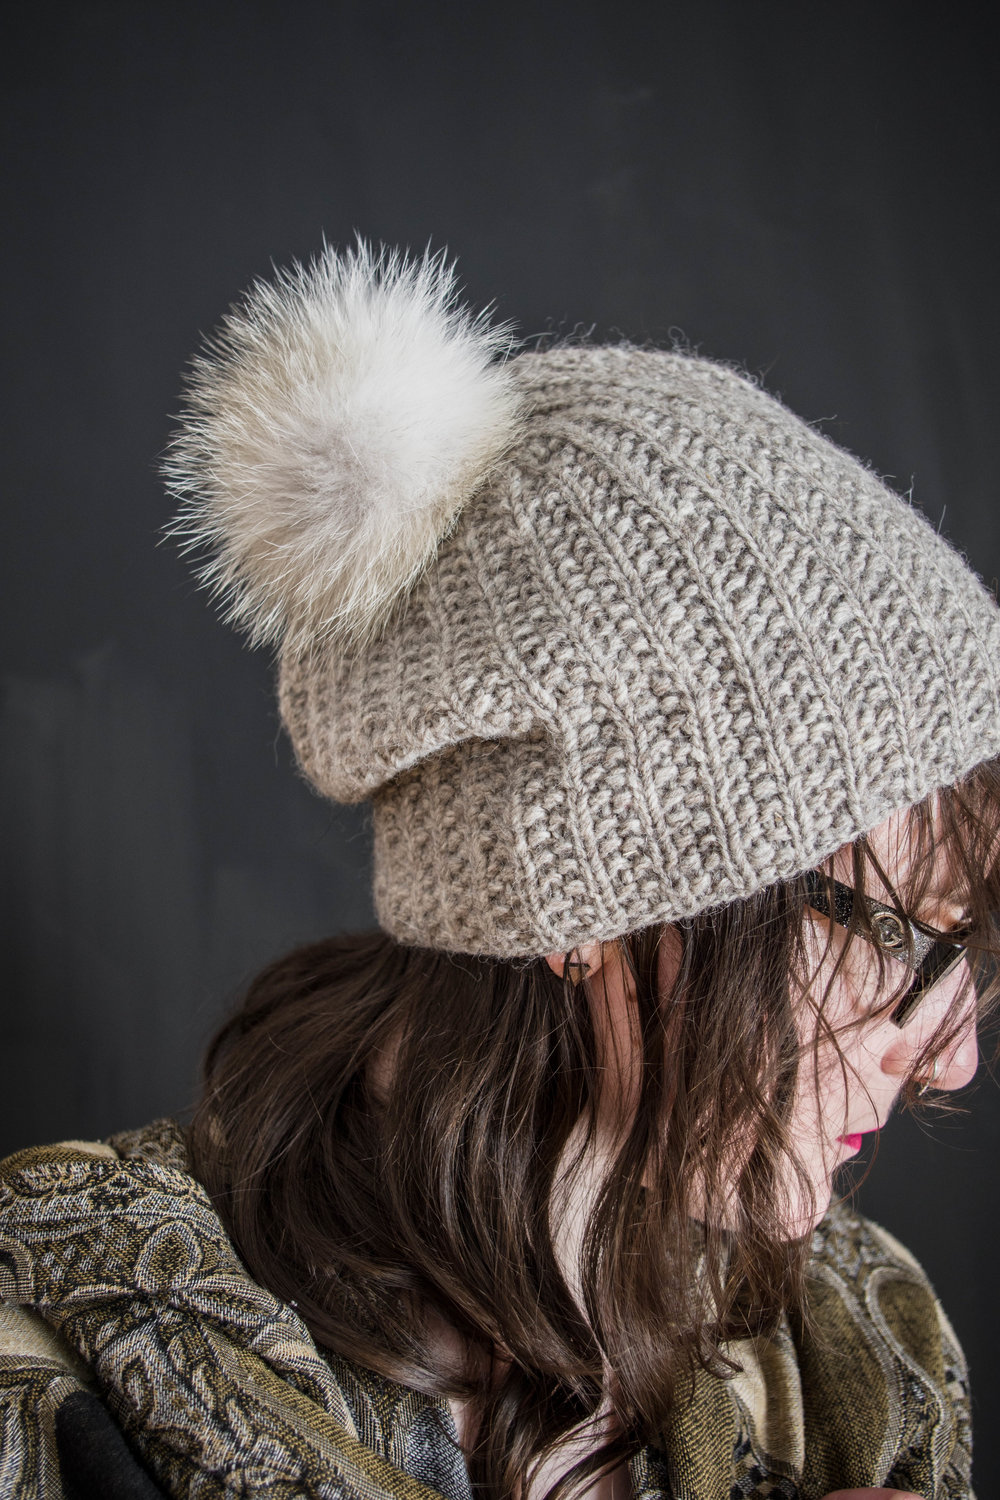 how to contribute  - the scholarship fund is topped up through the purchase of the crush hat pattern, which danielle was going to model for me before she passed. 50% of the proceeds of this pattern moving forward will go to the scholarship fund to support the expansion of danielle's curious spirit in a wider population. danielle was going back to school to officially become a teacher after teaching in other capacities, and she would have been incredible. here's to the encouragement of lifelong learning for all of us.